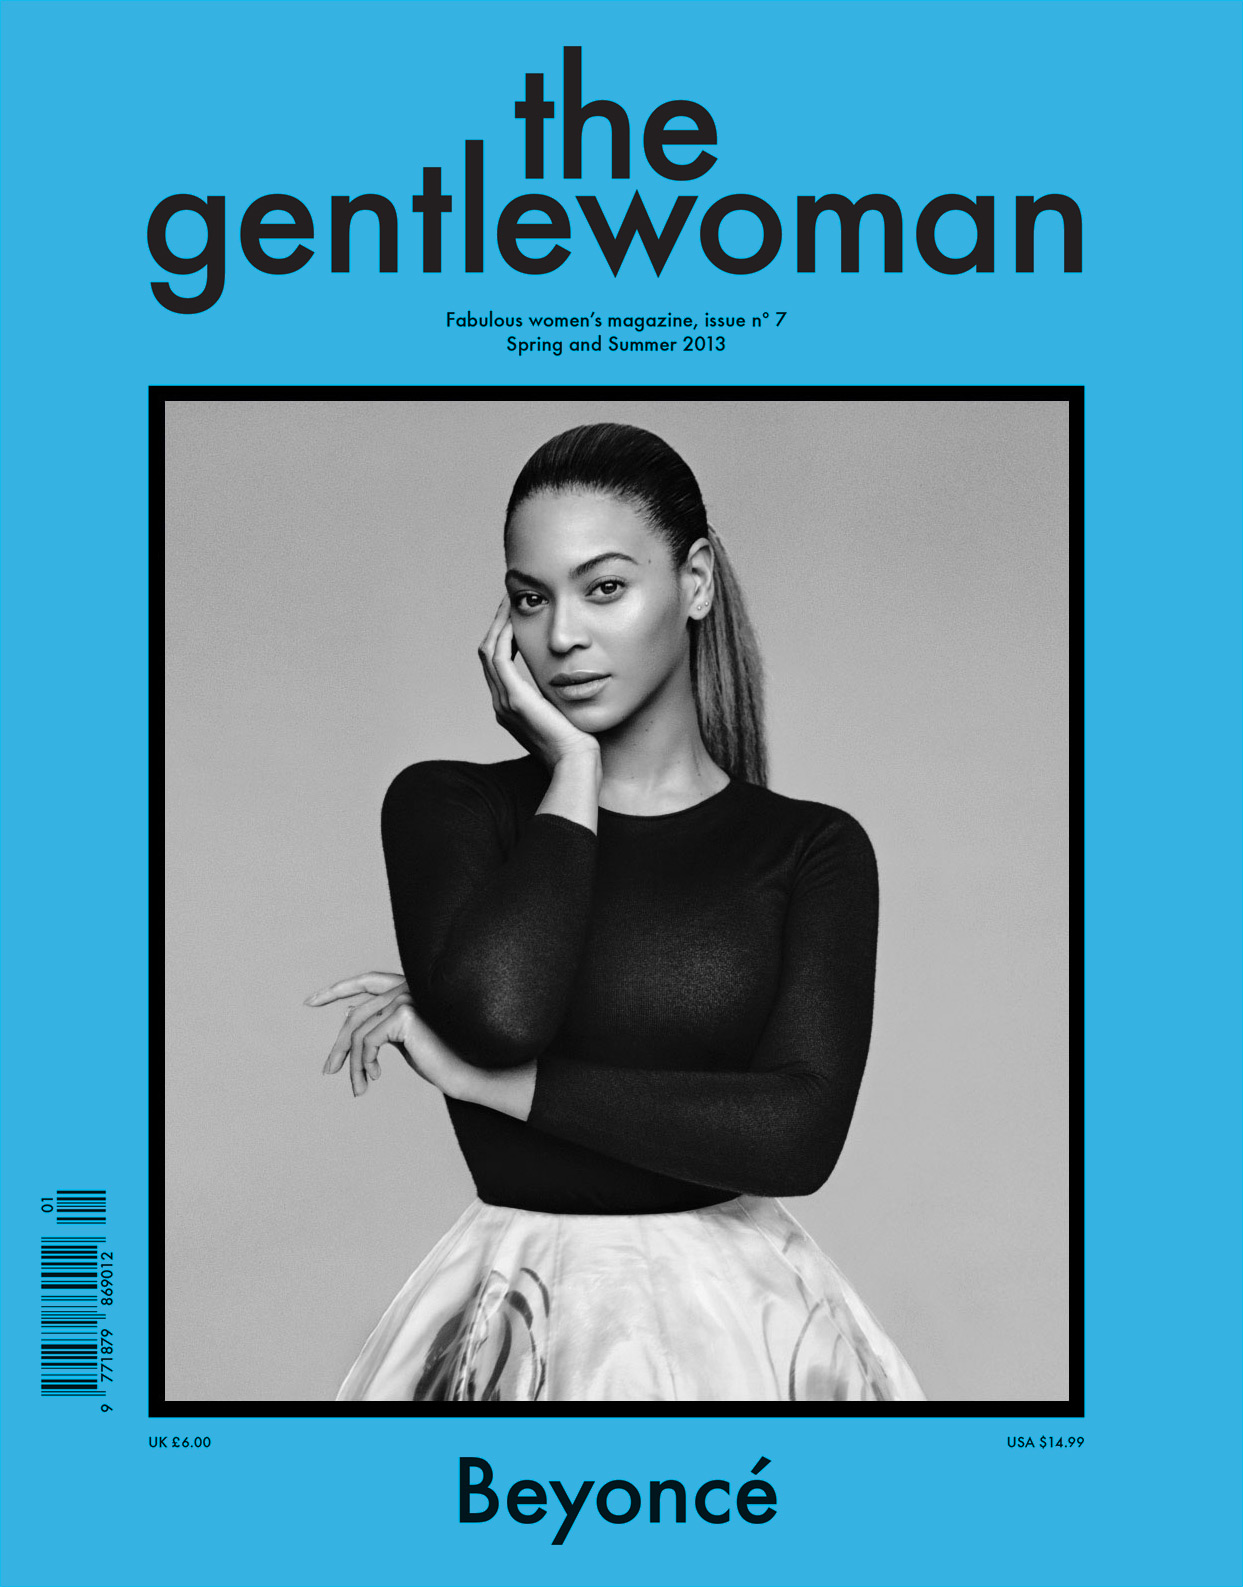 AM_Gentlewoman_She_Runs_Her_World_with_Beyonce_SS_2013_Cover.jpg